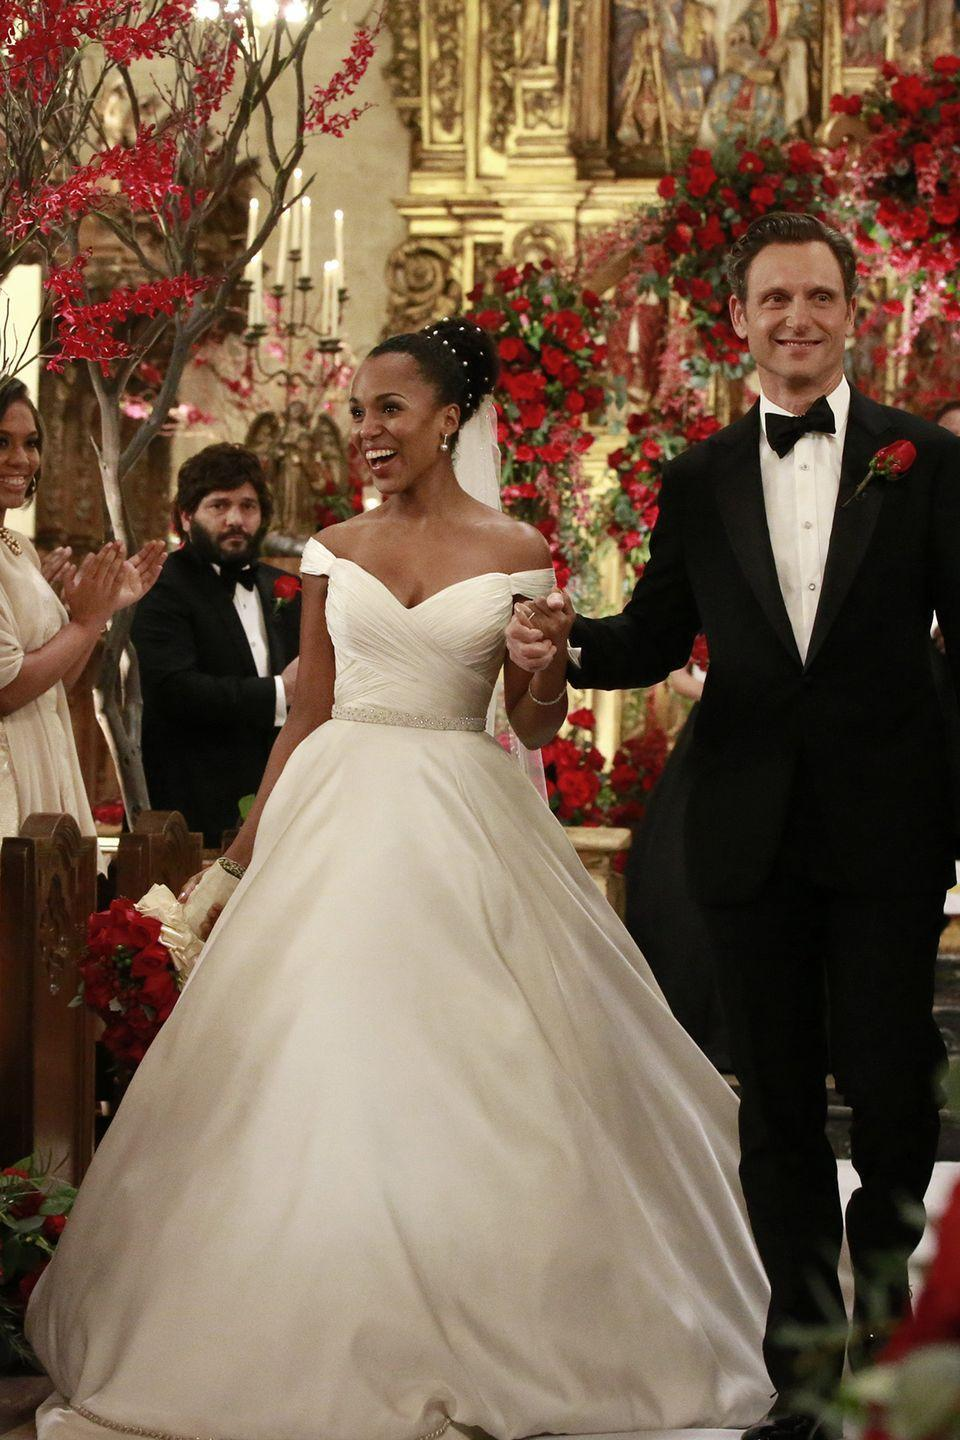 "<p>For those Fitz fans out there in the <em>Scandal</em> universe, this was probably a heartbreaking scene. This wedding sequence from season 6 aired as a ""what if"" moment in which audiences saw what his marriage to Olivia could have looked like. In it, Olivia wore a shoulder-baring gown with a dramatic silk skirt, and her hair pulled back in an elegant rhinestone-embellished bun. </p>"